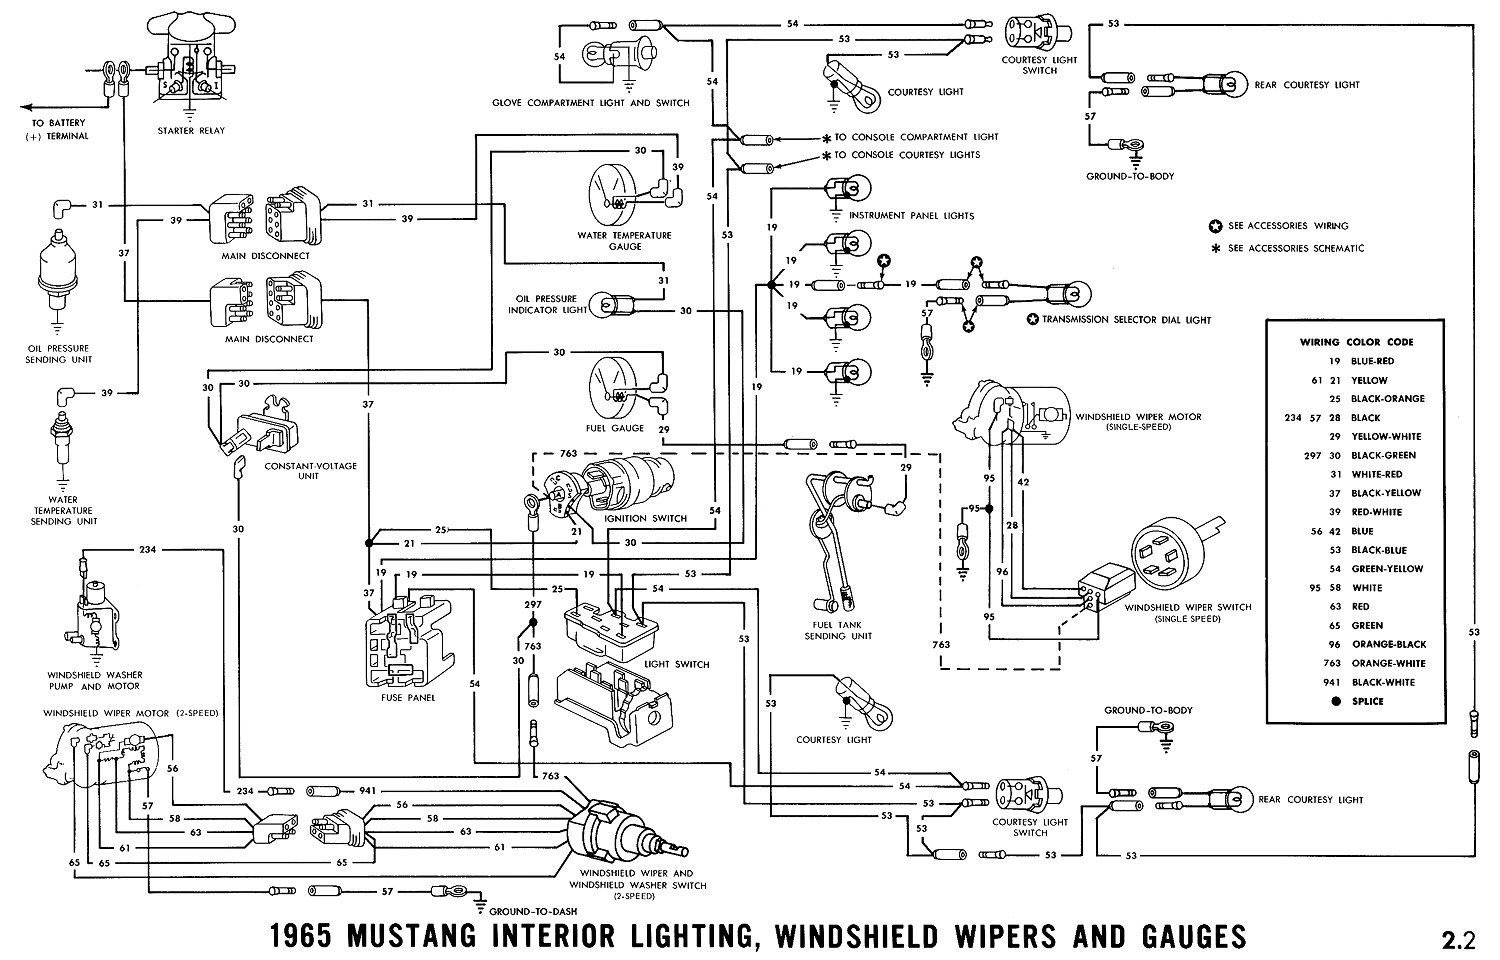 1965 ford mustang wiring diagram house wiring diagram symbols u2022 rh maxturner co  1967 ford mustang fuse box diagram